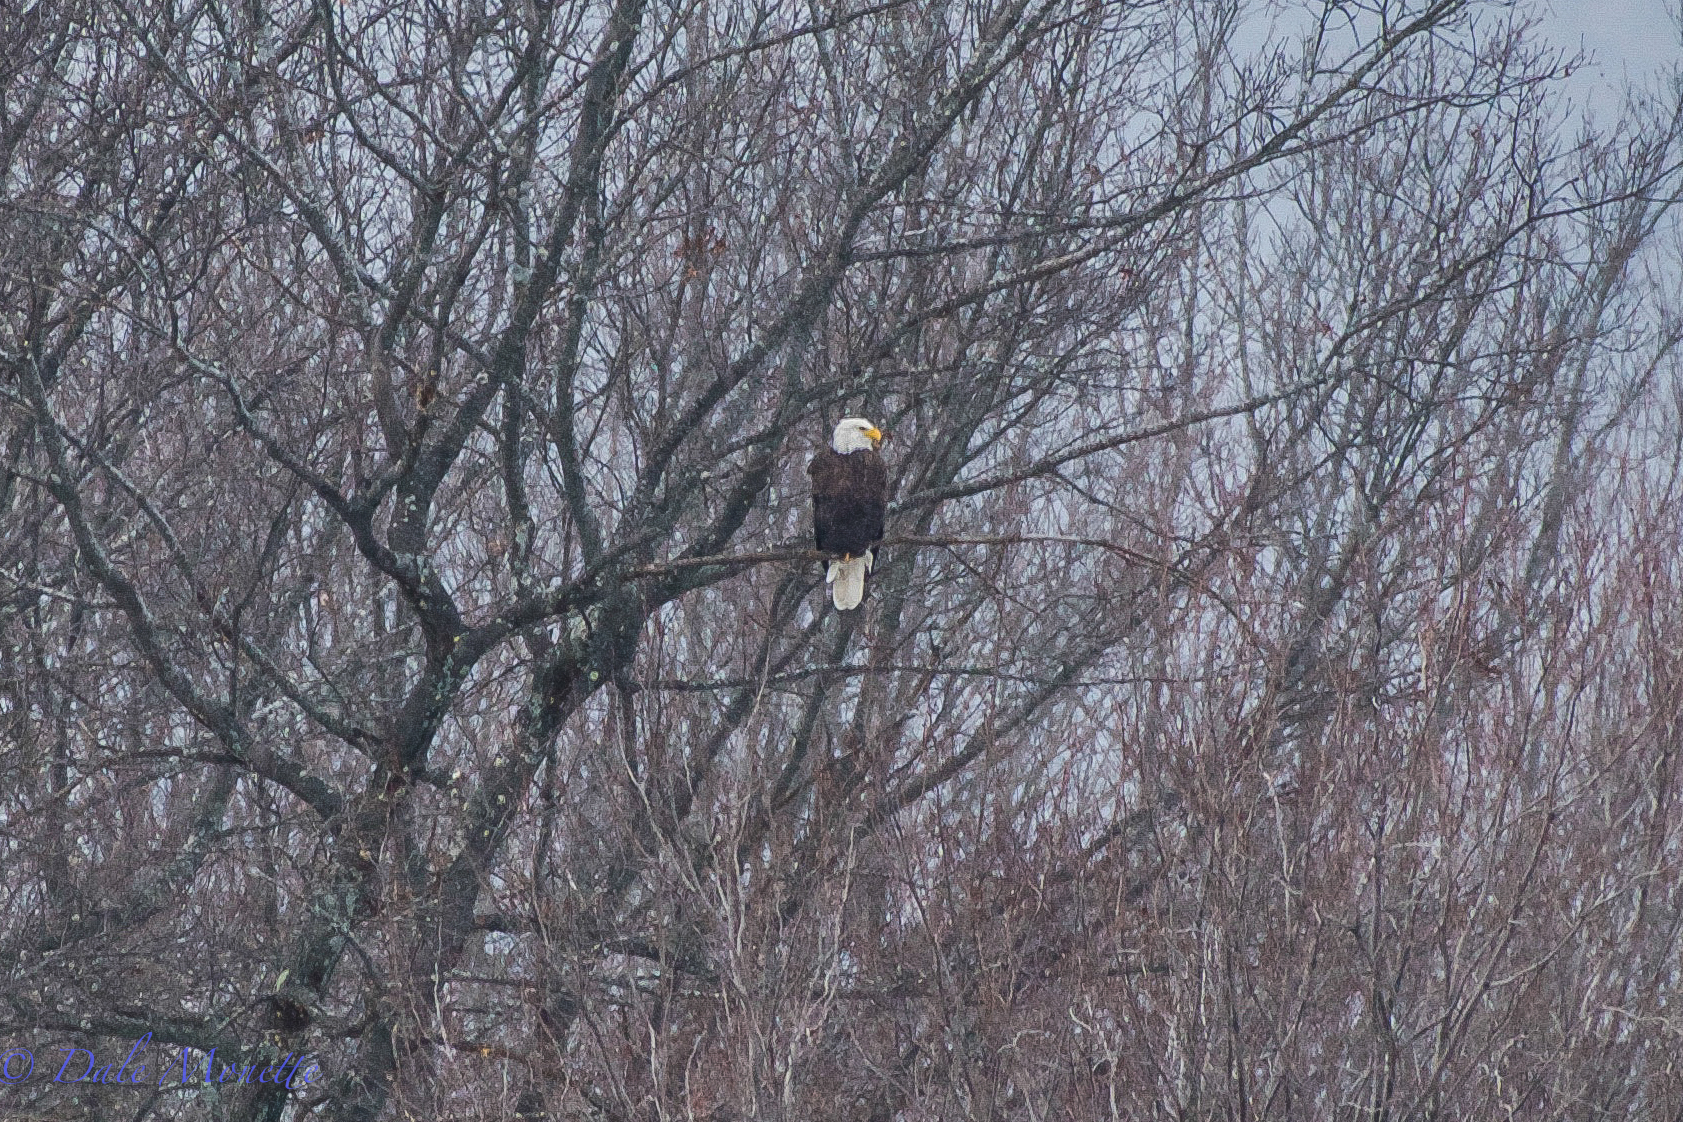 One of the bald eagles from the mating pair surveys their domain in the light snow in northern Quabbin today.  1/14/16